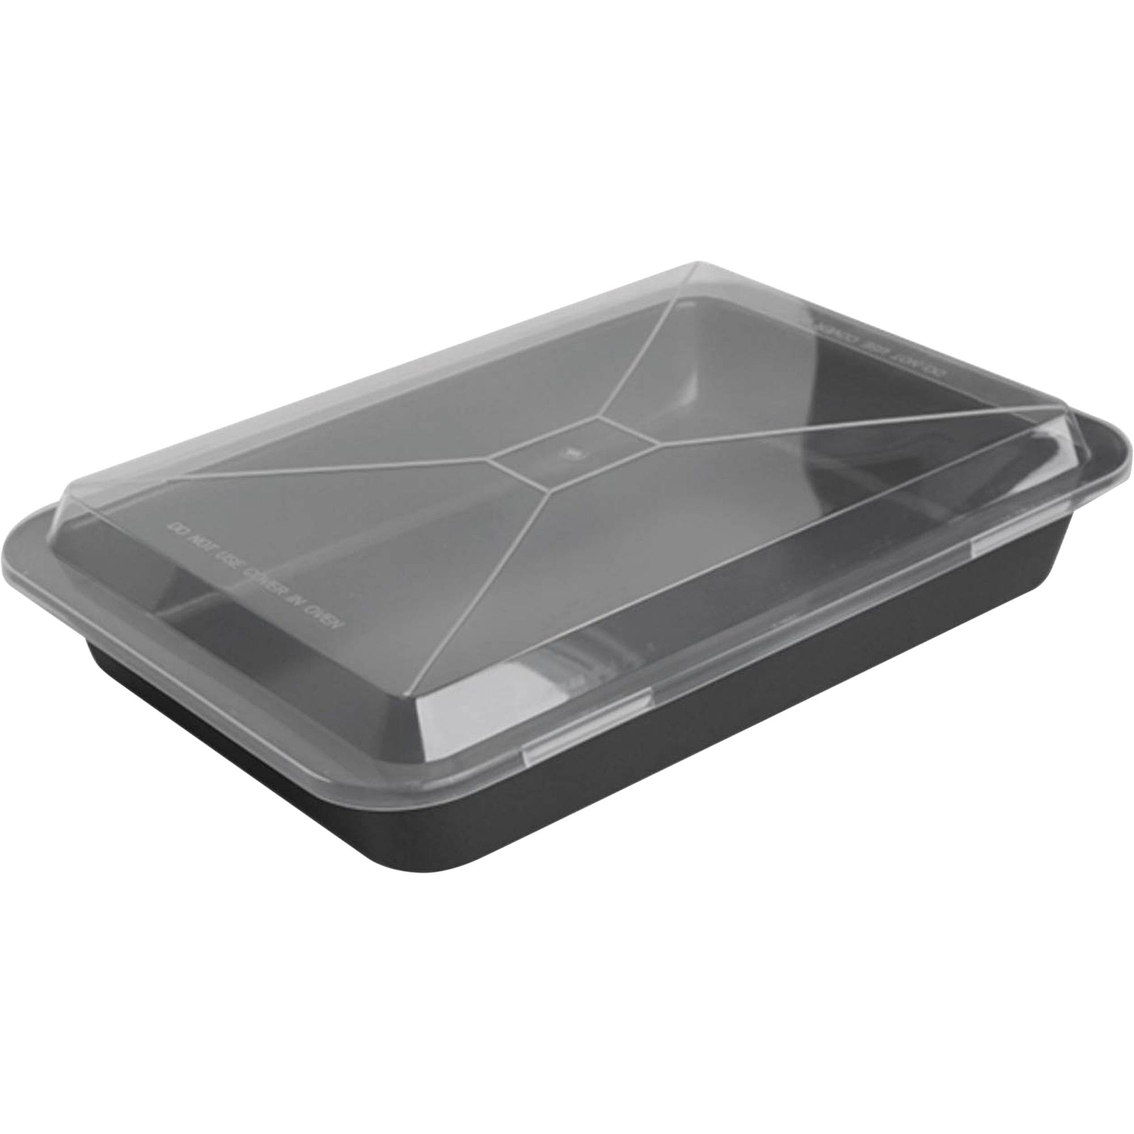 T Fal Airbake Nonstick 13 X 9 In Cake Pan With Cover